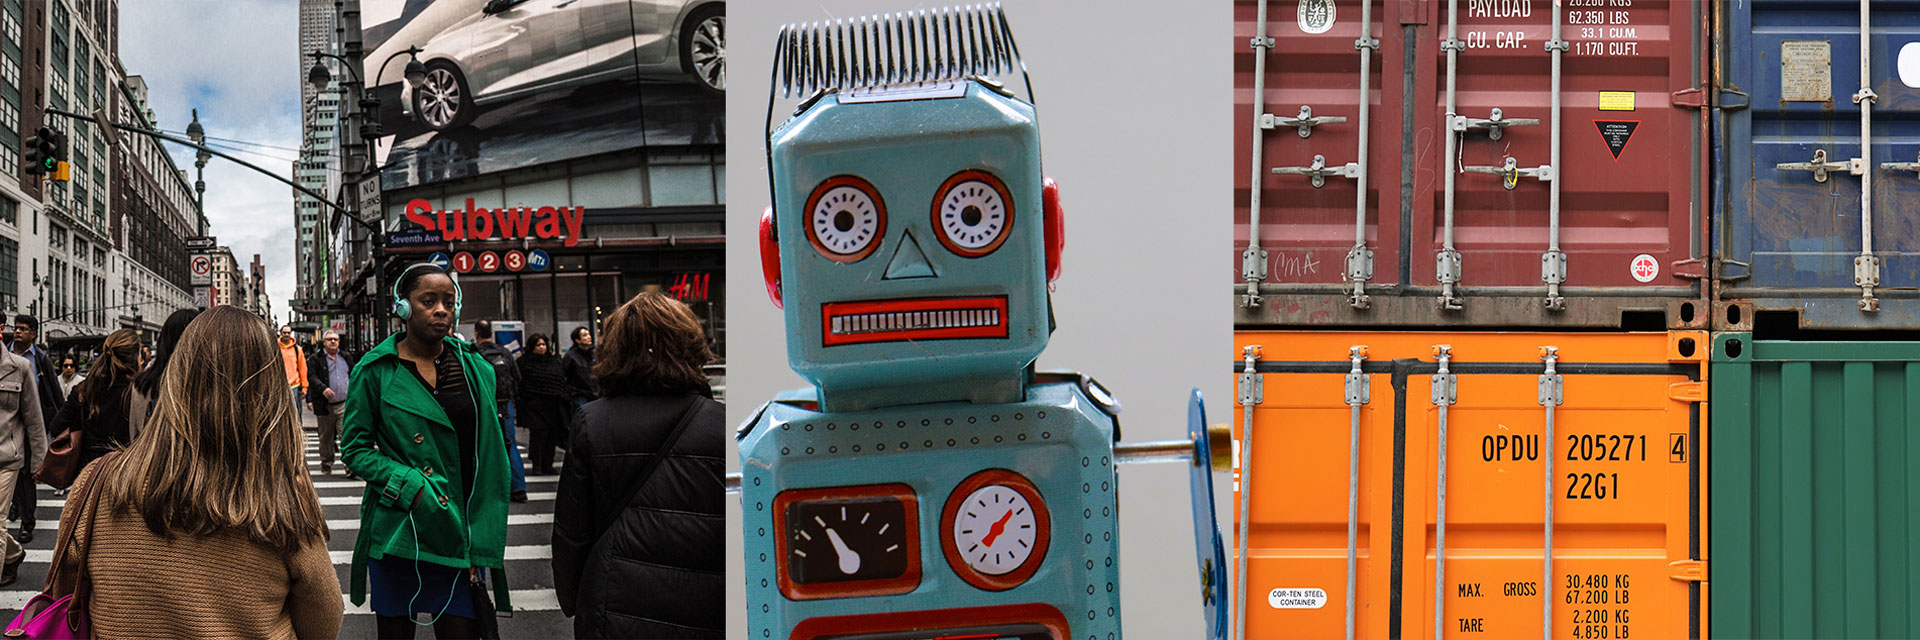 People on the street, a robot, and shipping containers: all symbols of PLED research.